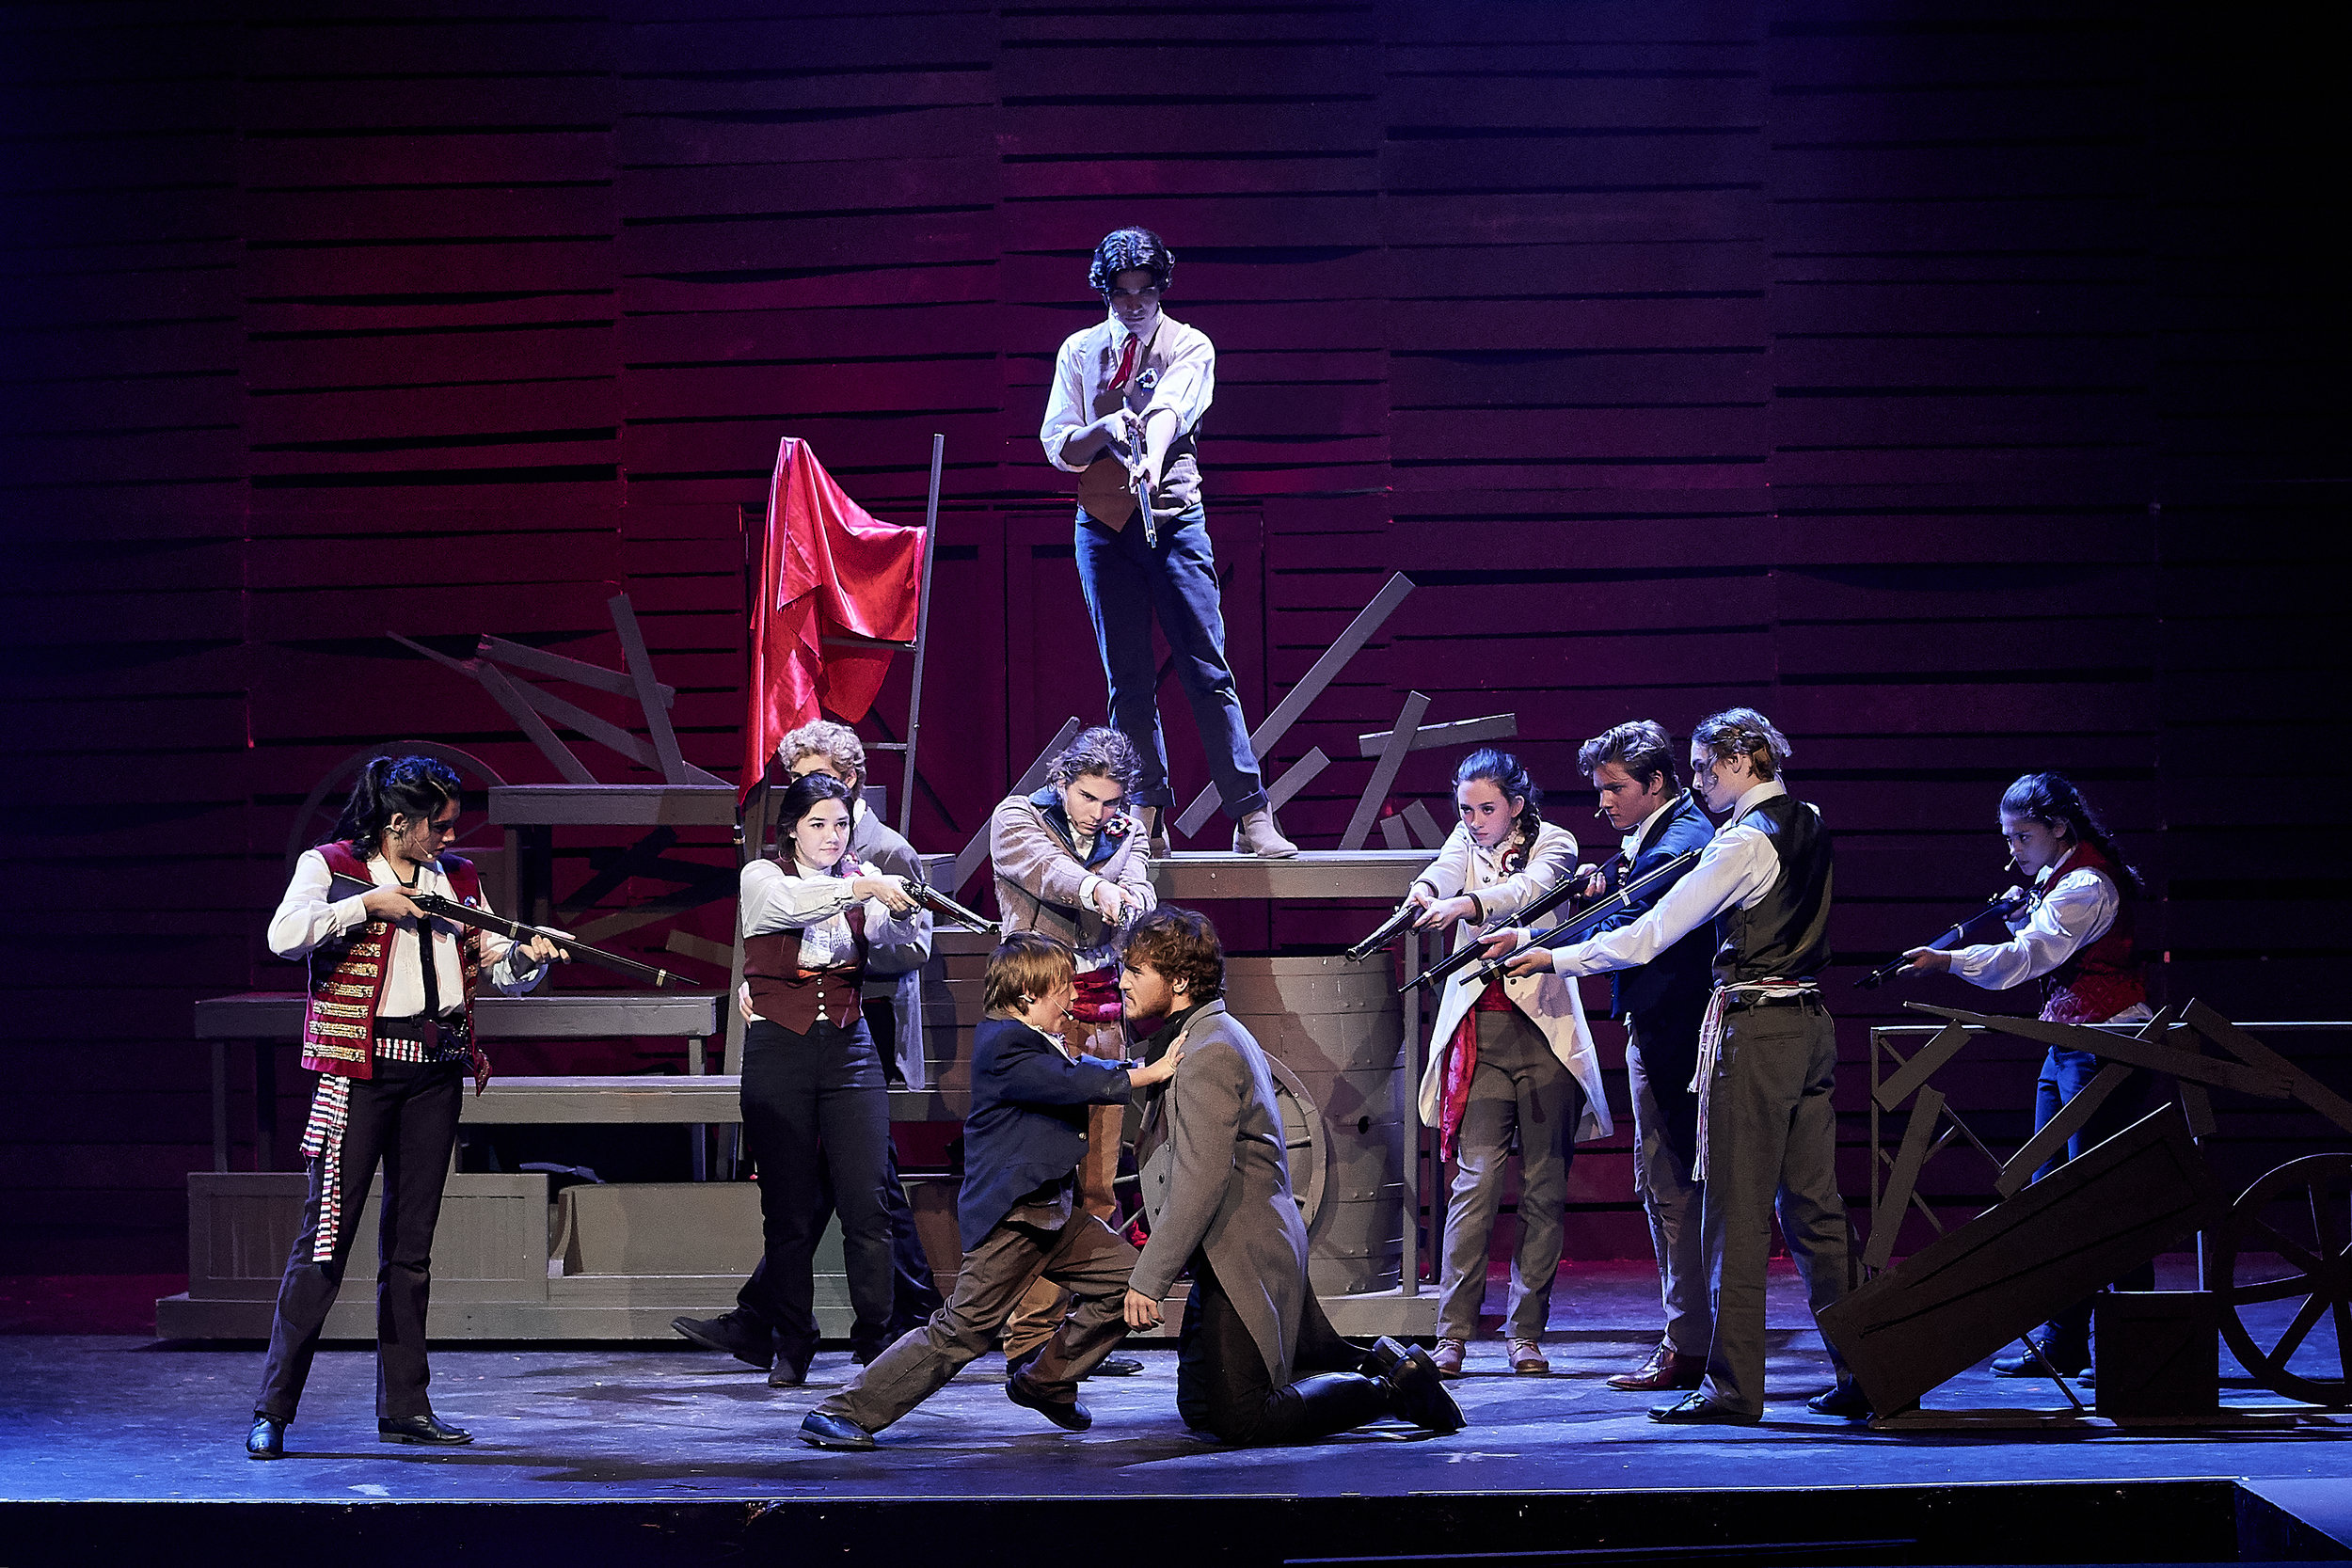 LCC_Les_Miserables__0259.jpg